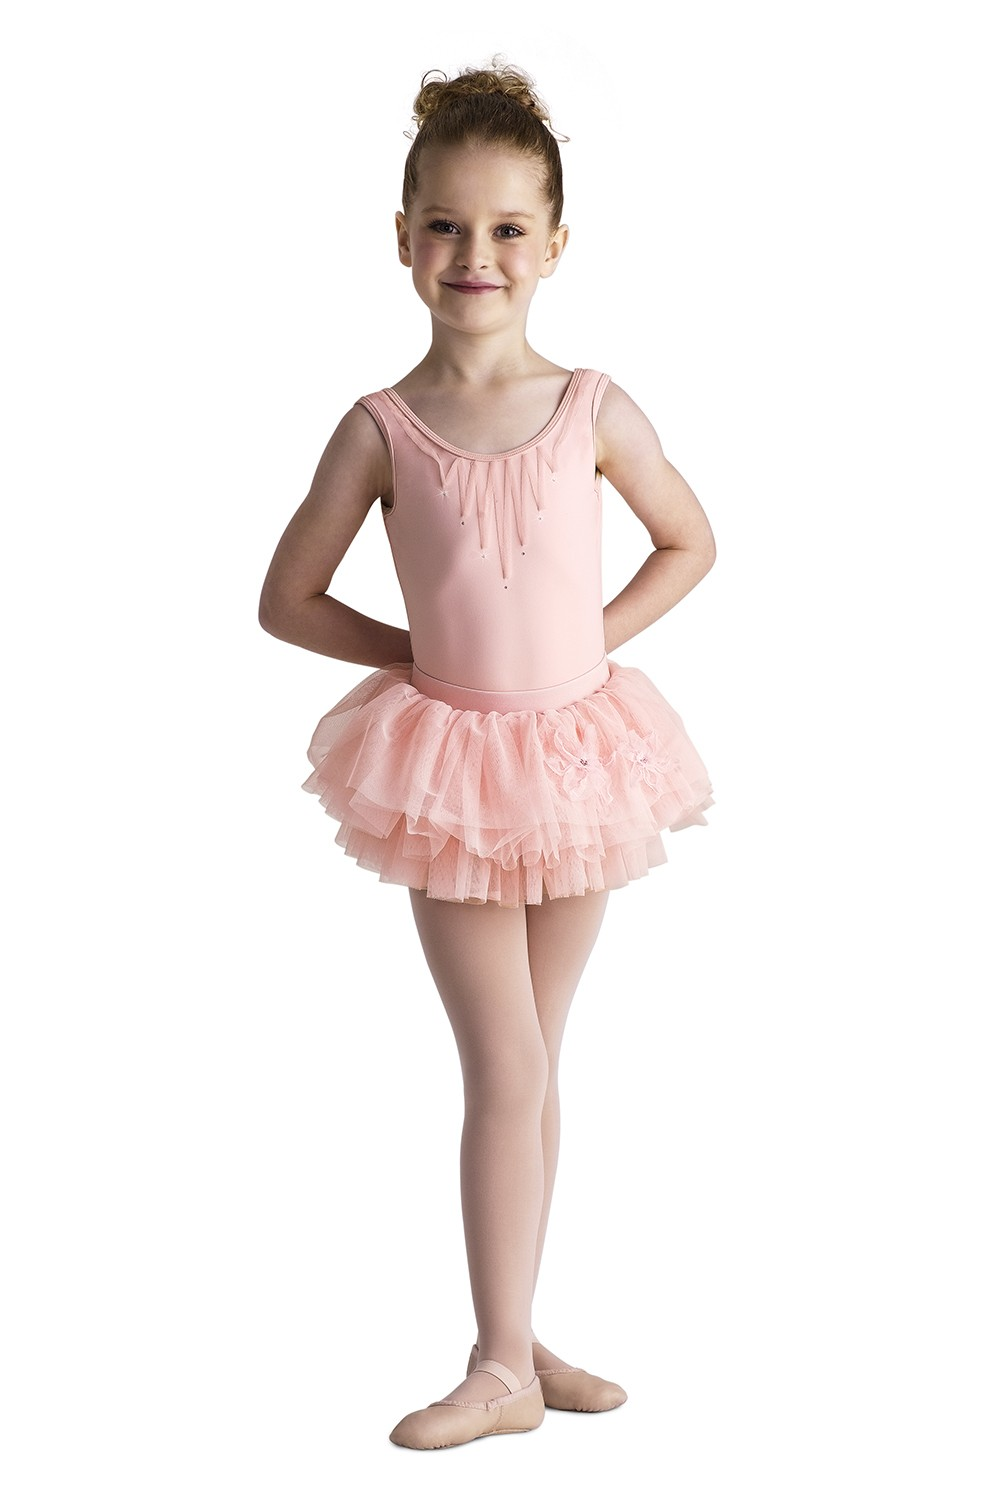 Ribbon Applique Tank Children's Dance Leotards